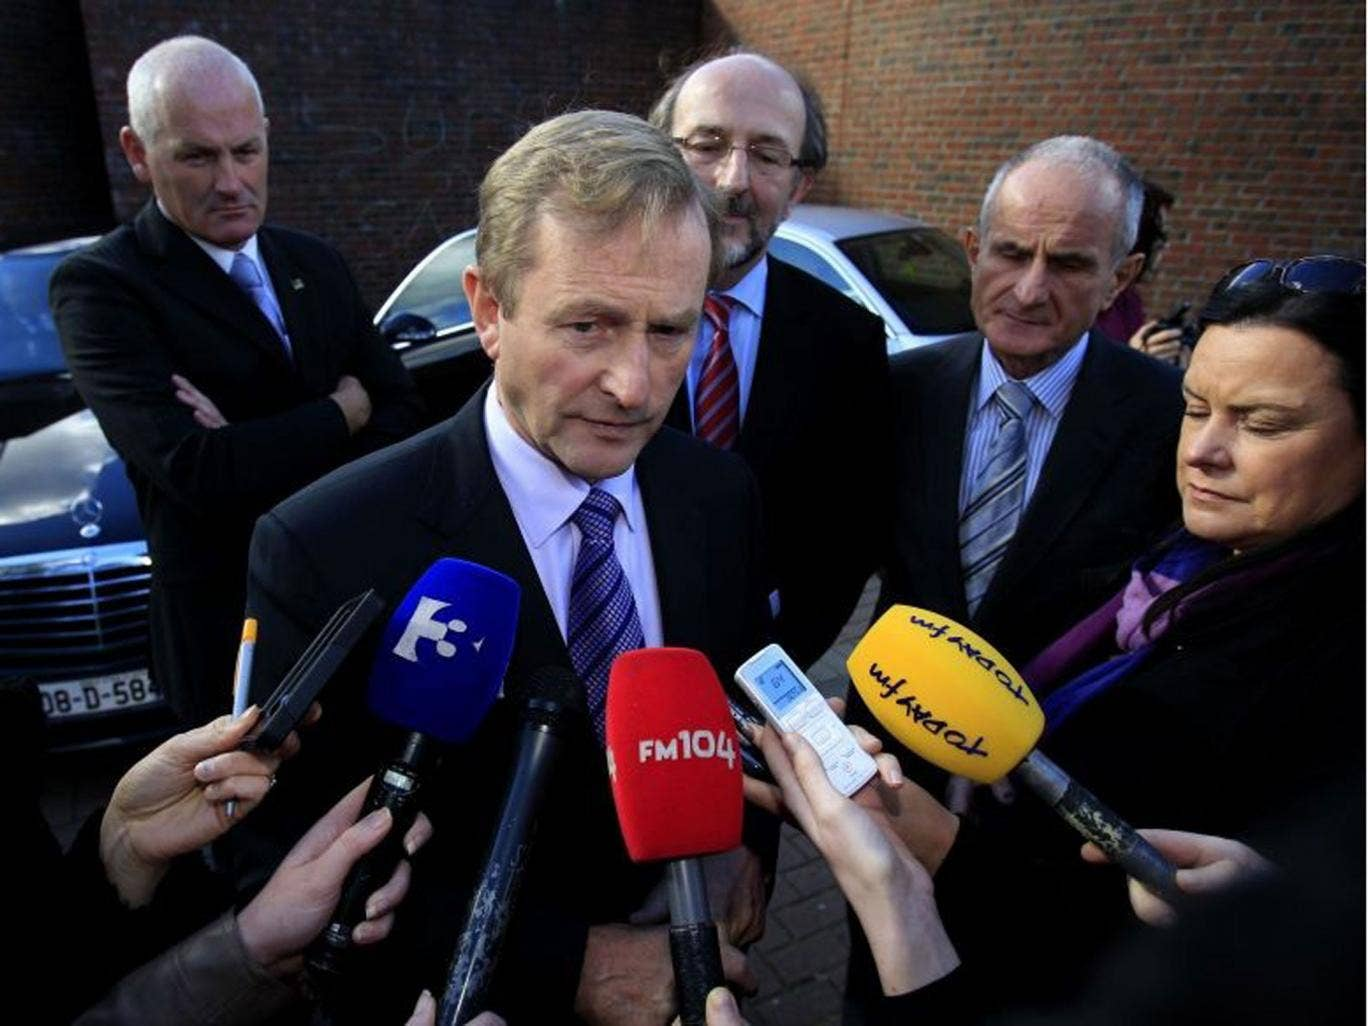 Taoiseach Enda Kenny speaks to members of the media. He has confirmed that Ireland will exit its strict bailout programme by the end of the year